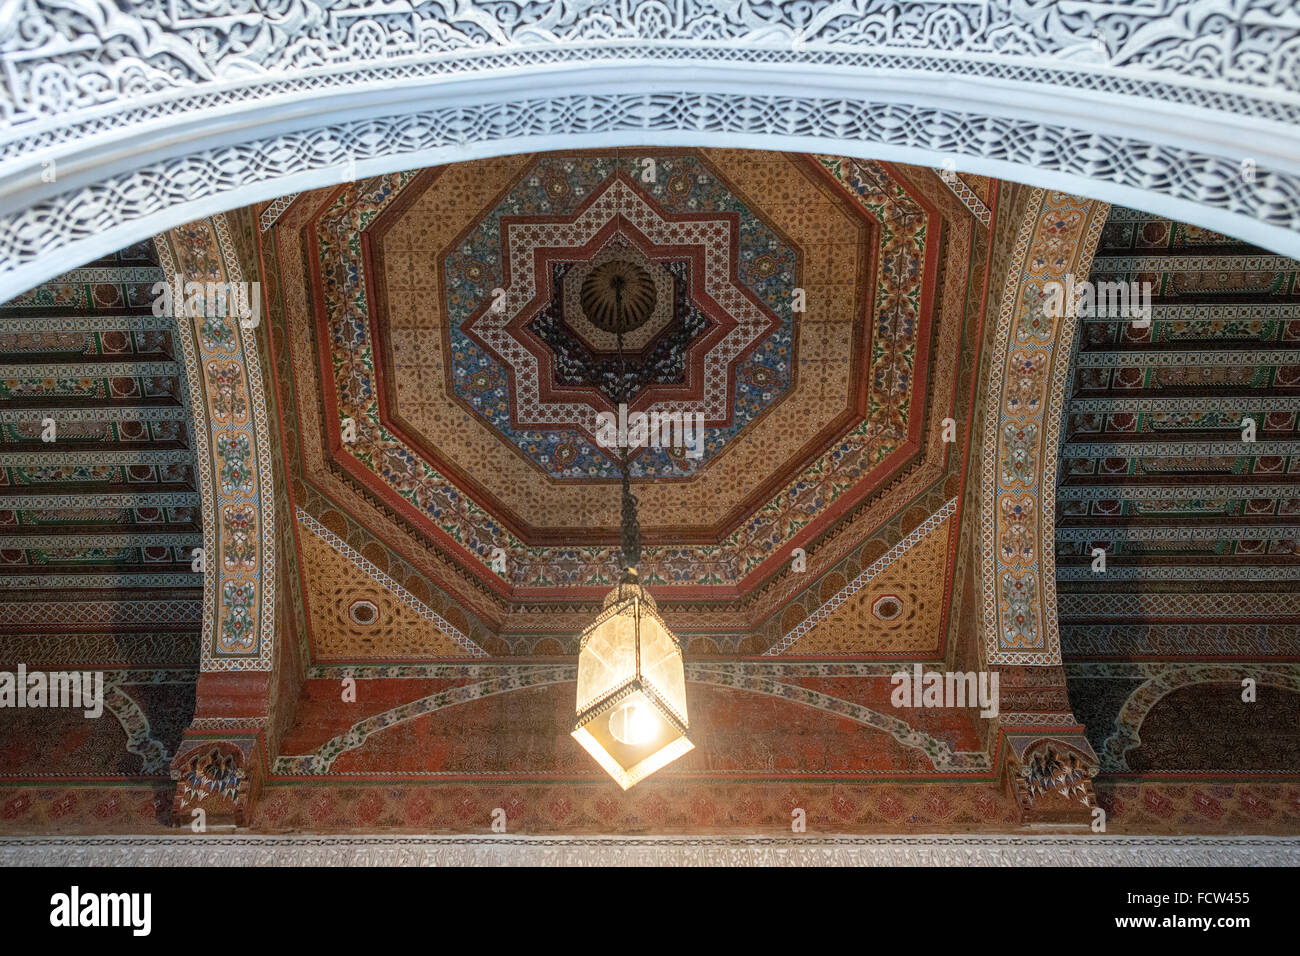 Ceiling in one of the rooms of the Bahia Palace in Marrakech, Morocco. - Stock Image